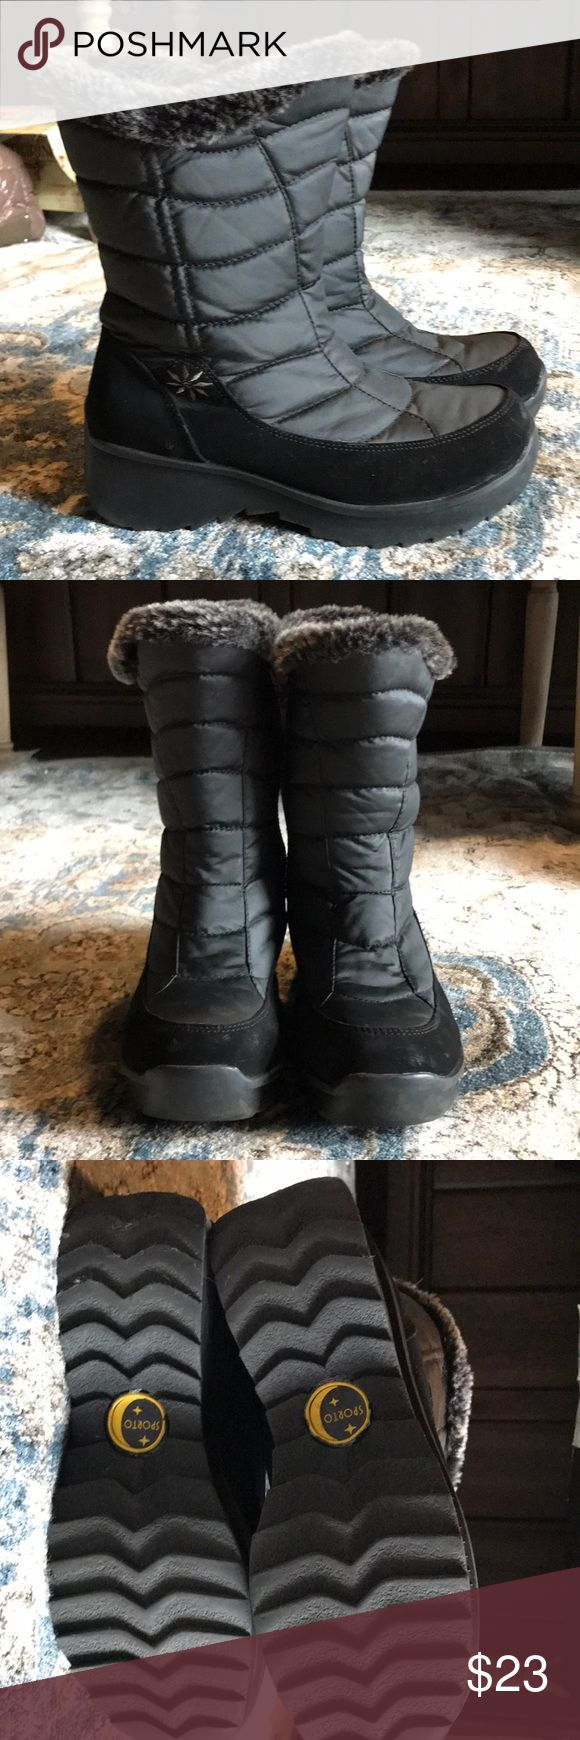 Sporto boots women's 7.5 Derby Winter ankle rain boots in excellent condition. Inside soles have material that shifted. Suede, nylon, faux fur. Size 7.5. Super cute boot. On narrow side. Sporto Shoes Ankle Boots & Booties